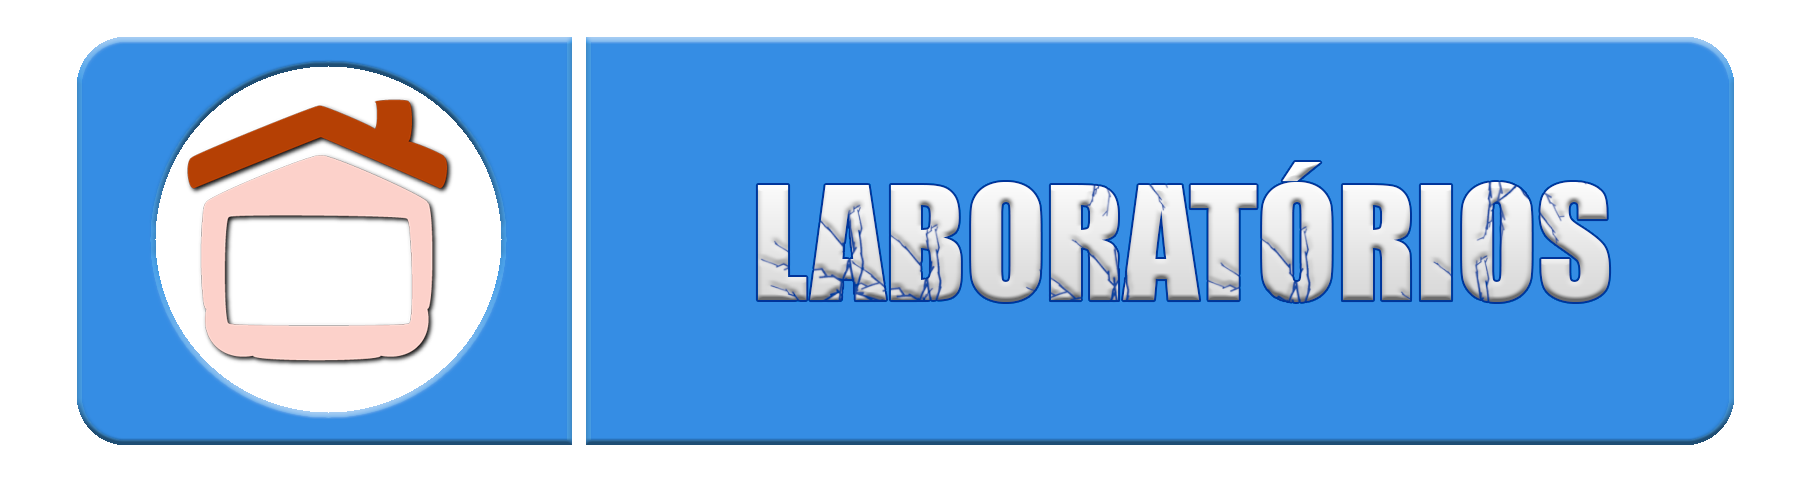 laboratorios.png